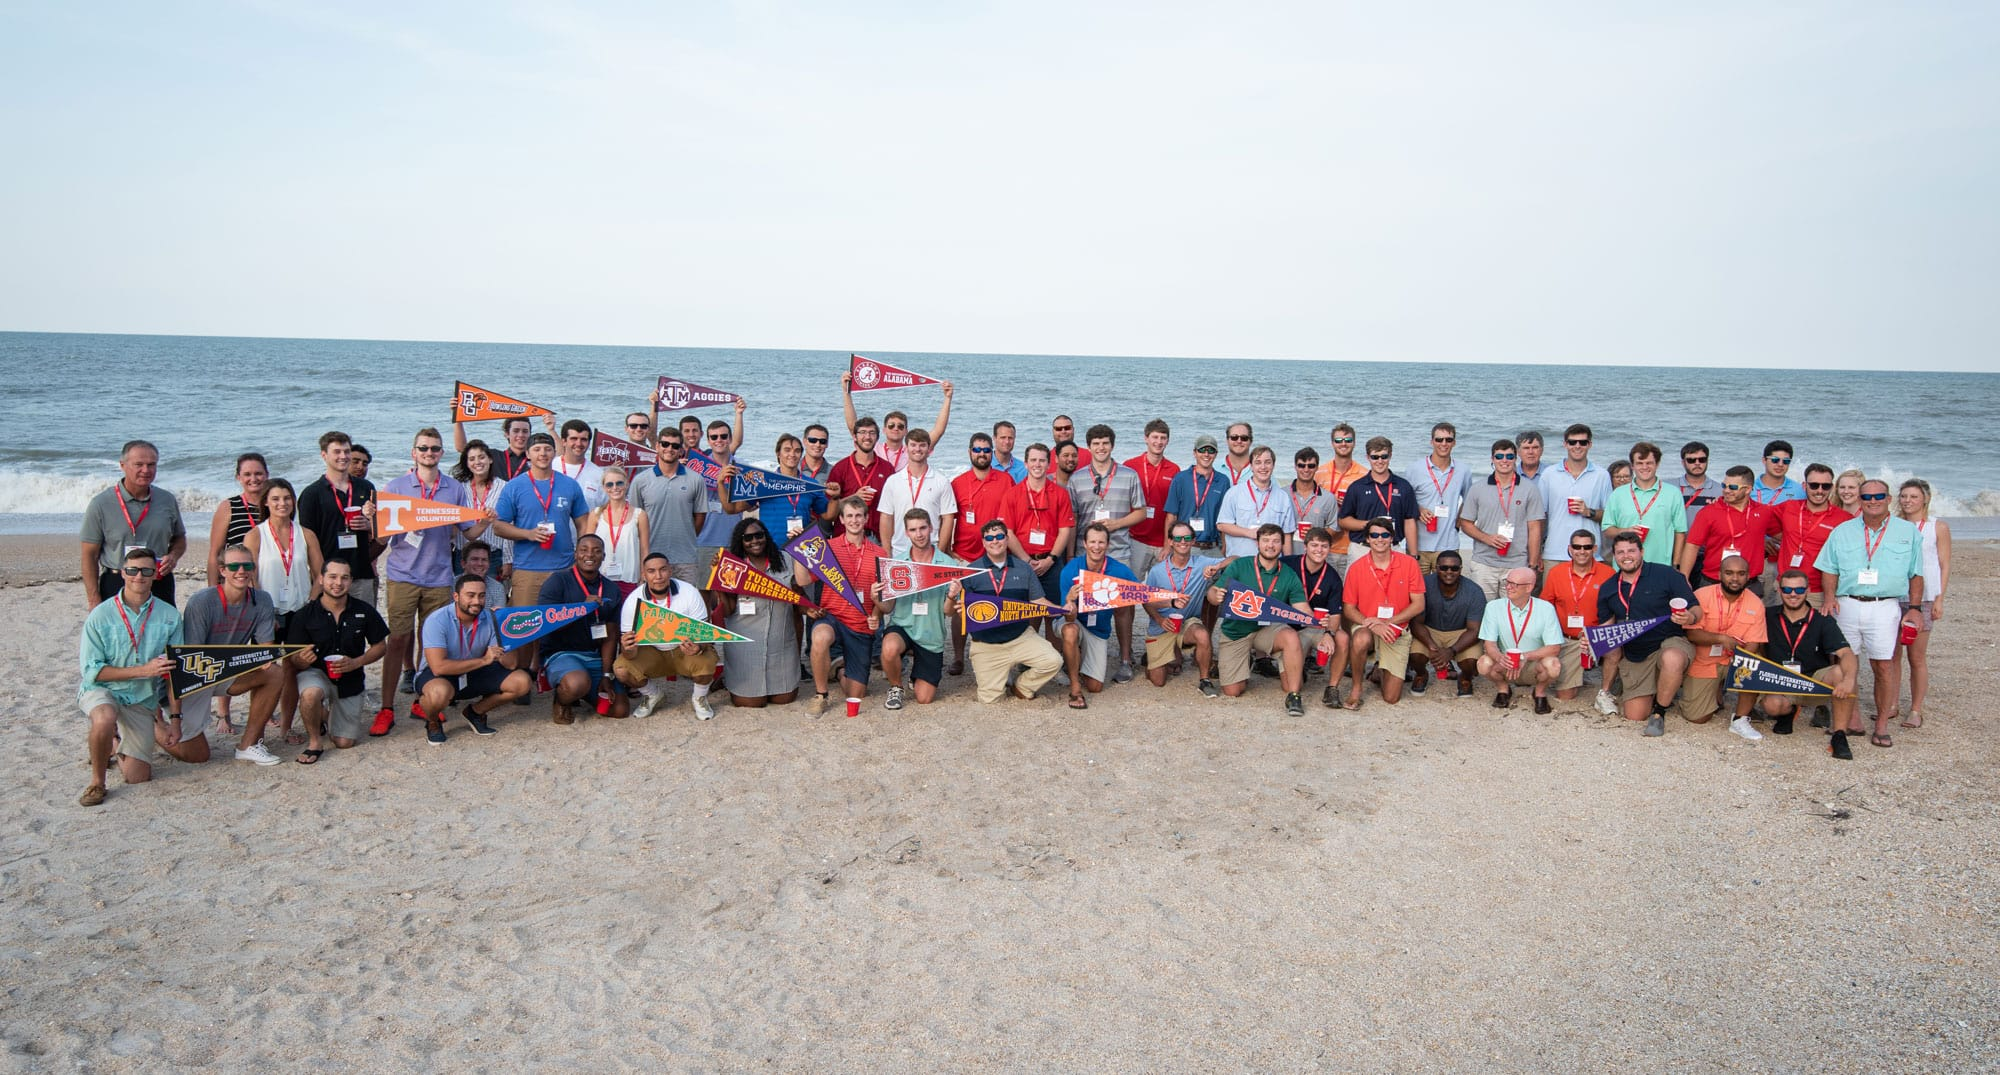 interns and staff at the beach holding college flags